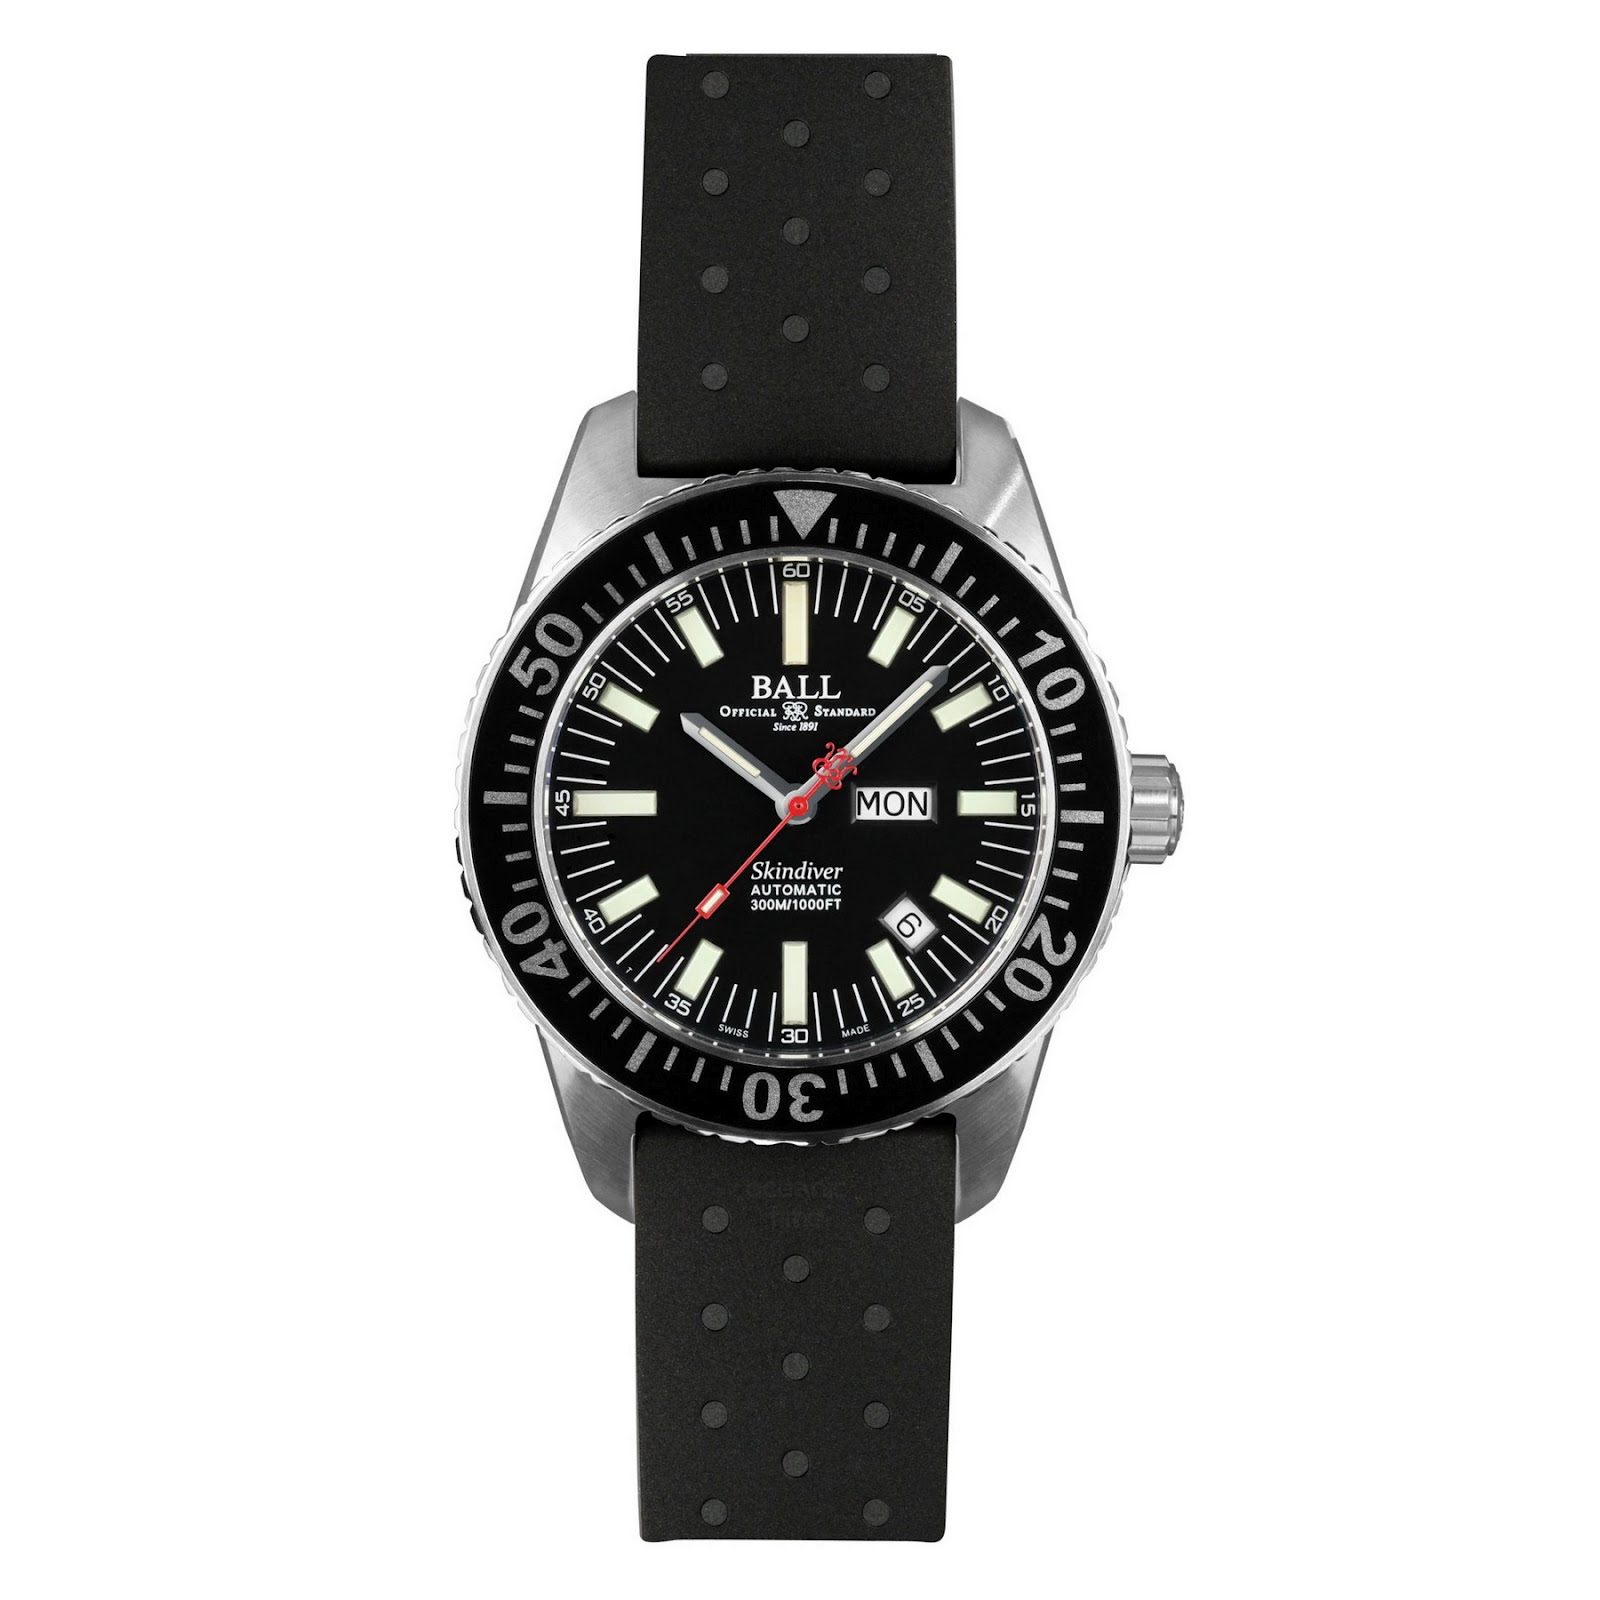 Ball watch co engineer master ii skindiver for Ball watches